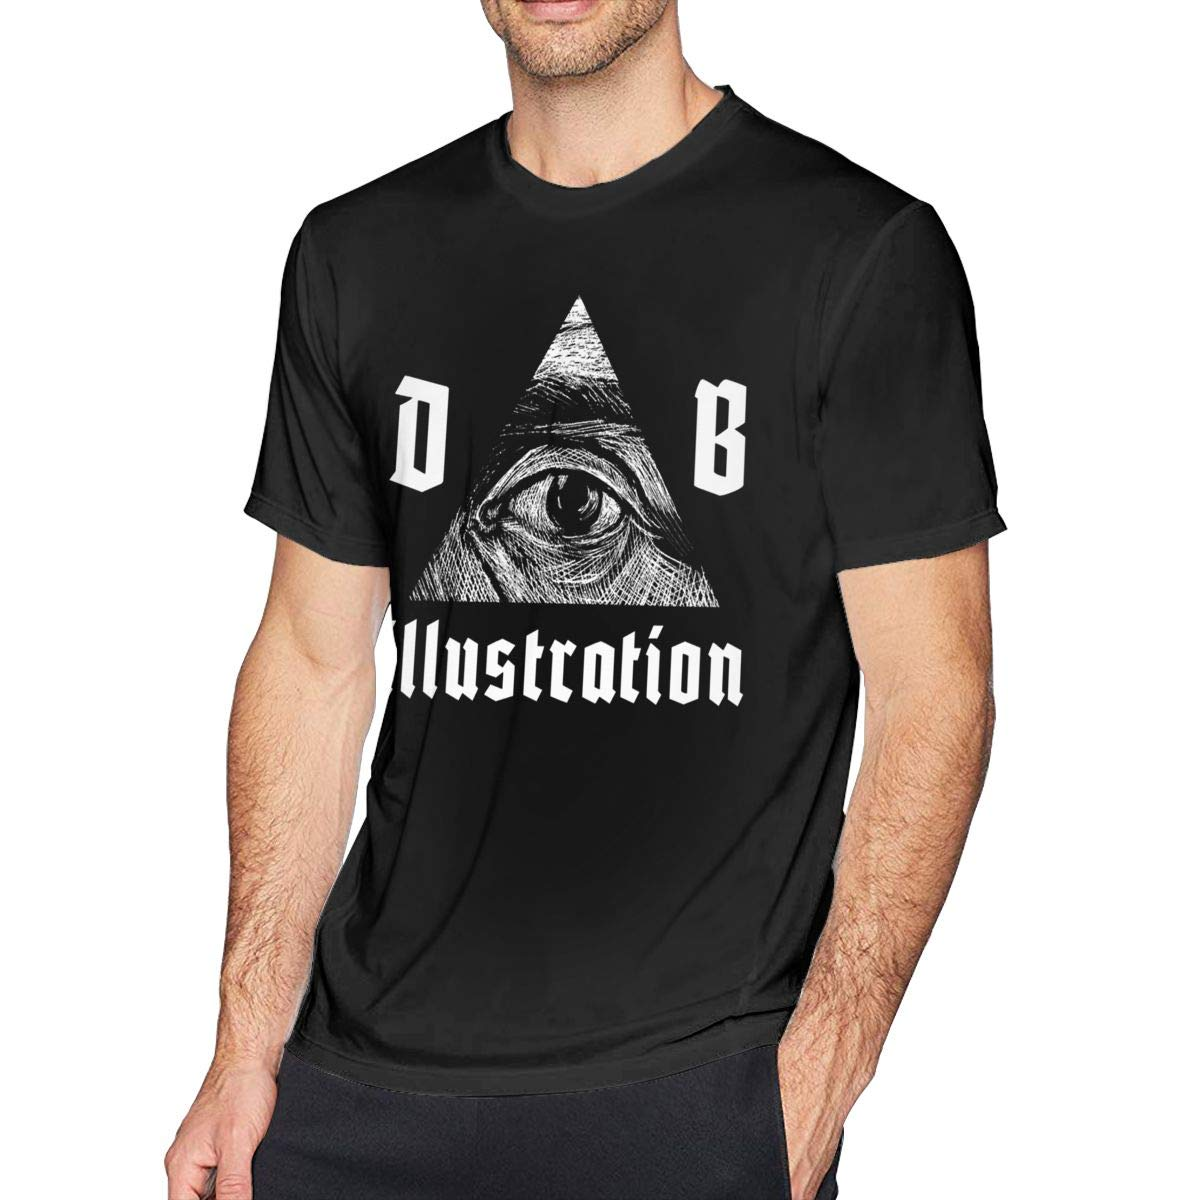 Bfcxbgdsig Dmitry Illustration Soft and Comfortable Fashionable Tshirt with Round Collar Black